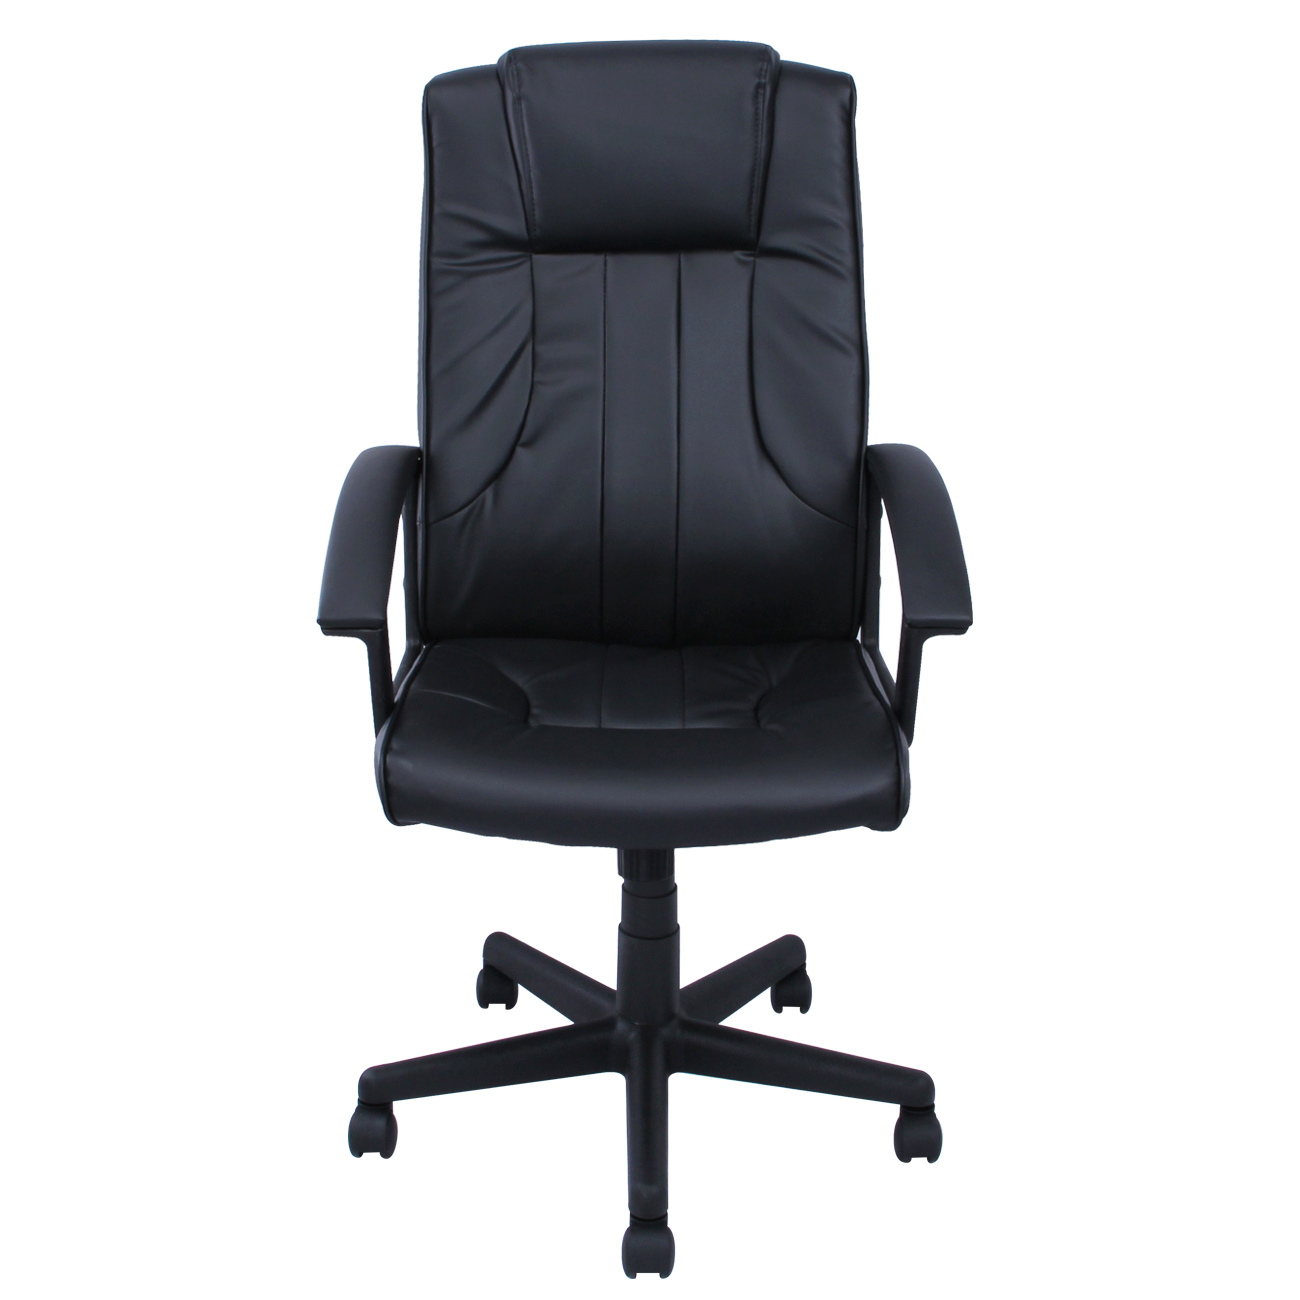 Black Office Chair PU Leather Ergonomic High Back Executive Computer Desk Tas